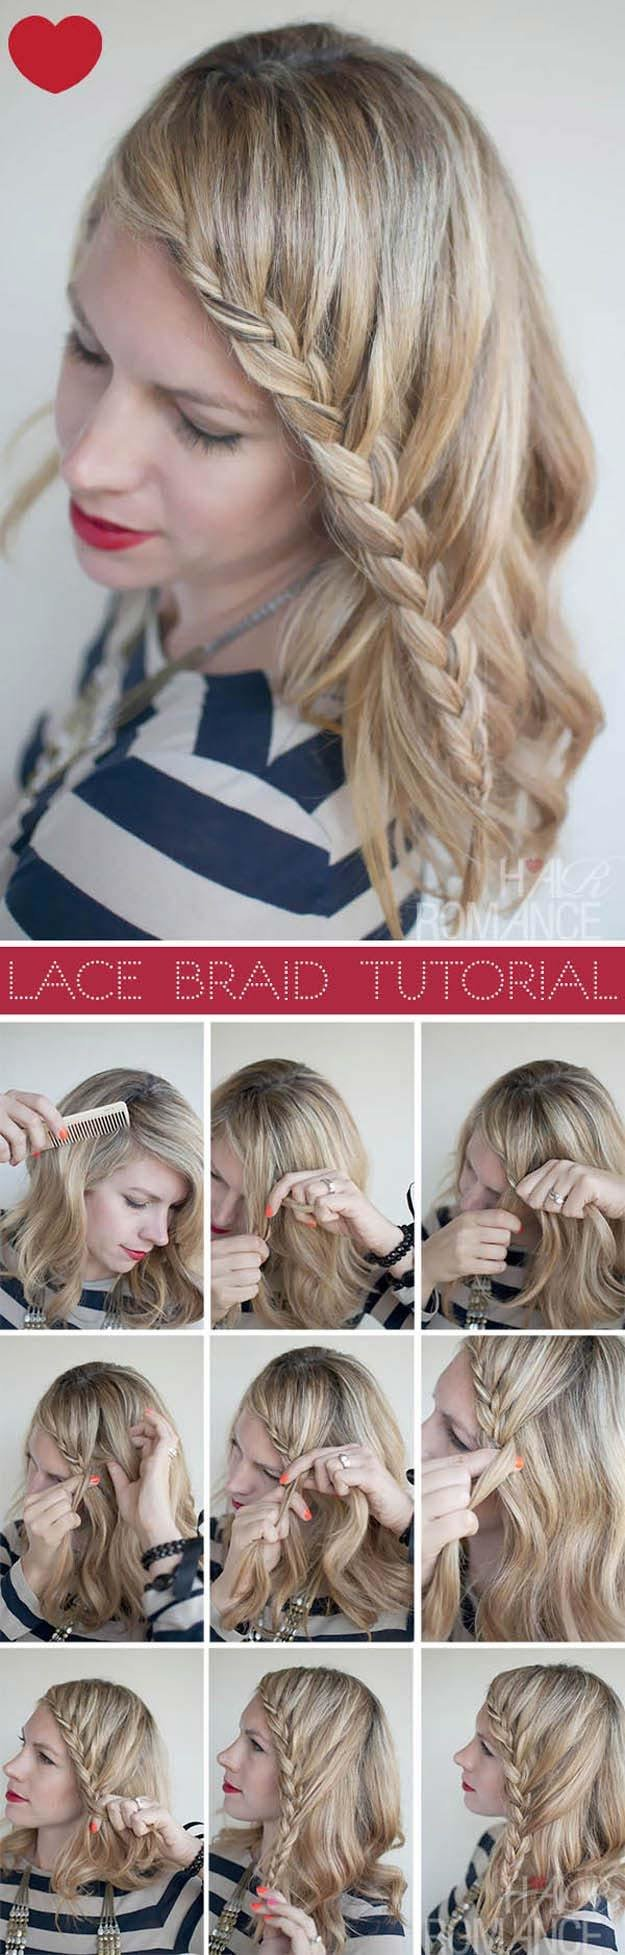 New 21 Tips To Instantly Make Your Hair Look Thicker Fashion Ideas With Pictures